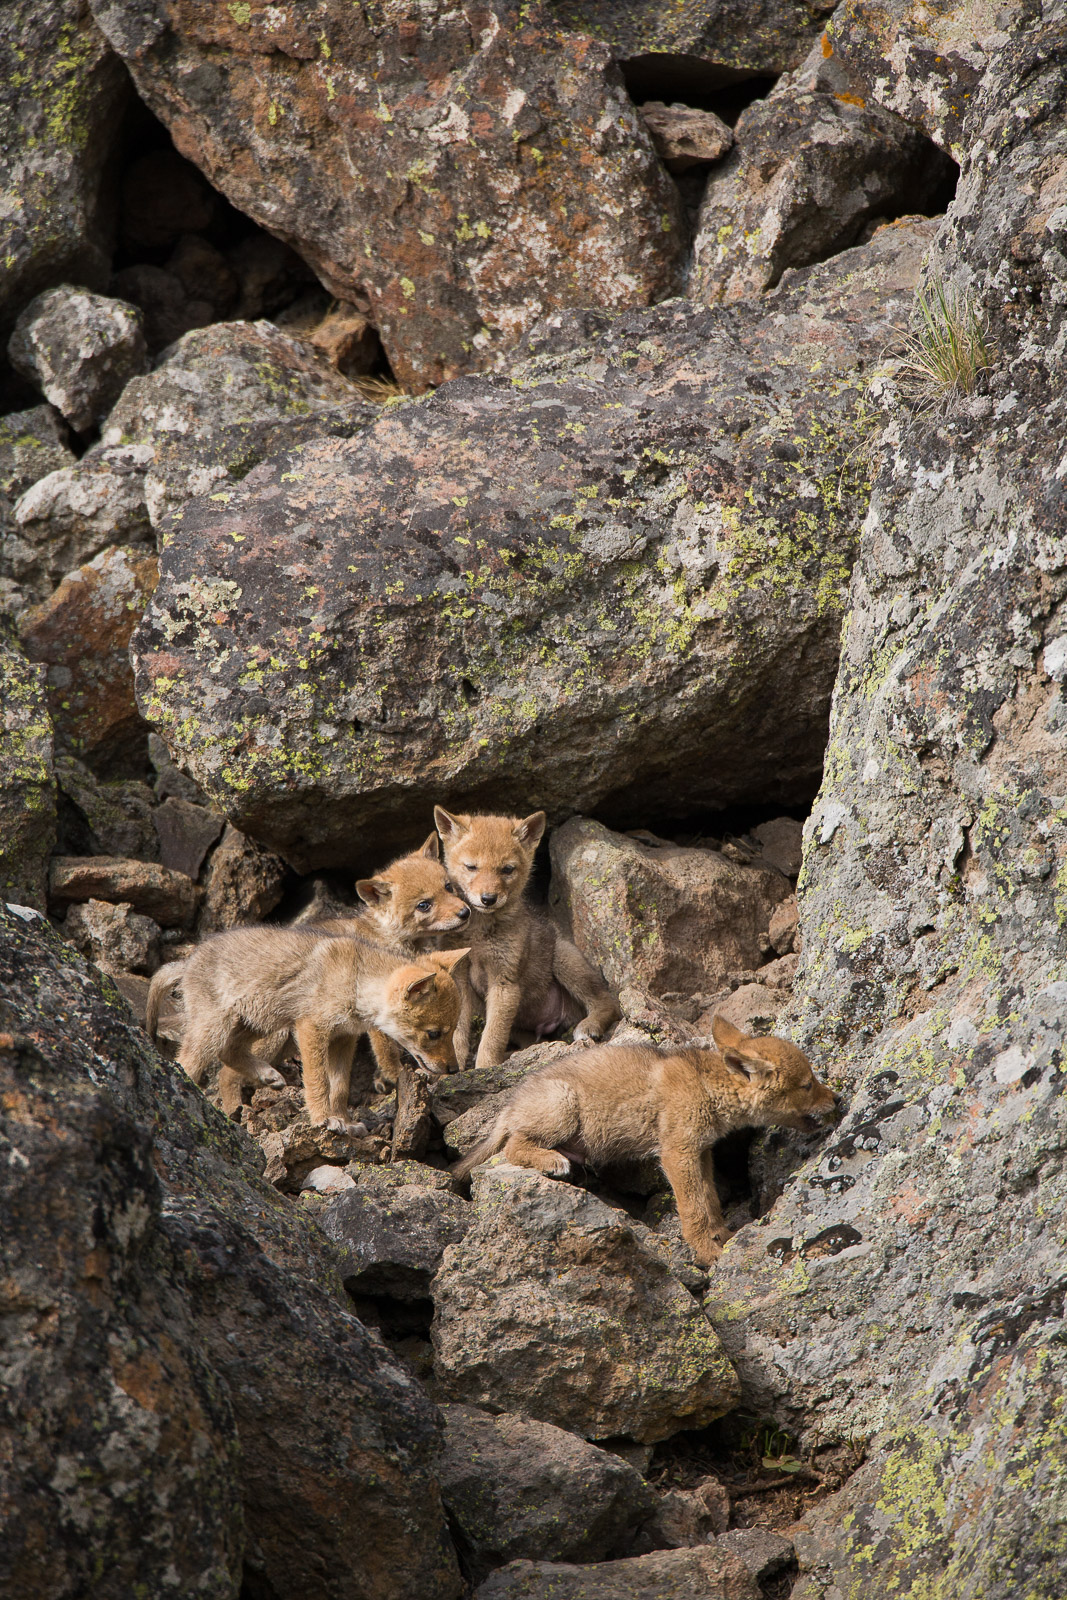 Siblings,Siblings,Yellowstone national park, coyote,venture,rock,caverns,world,vertical, photo